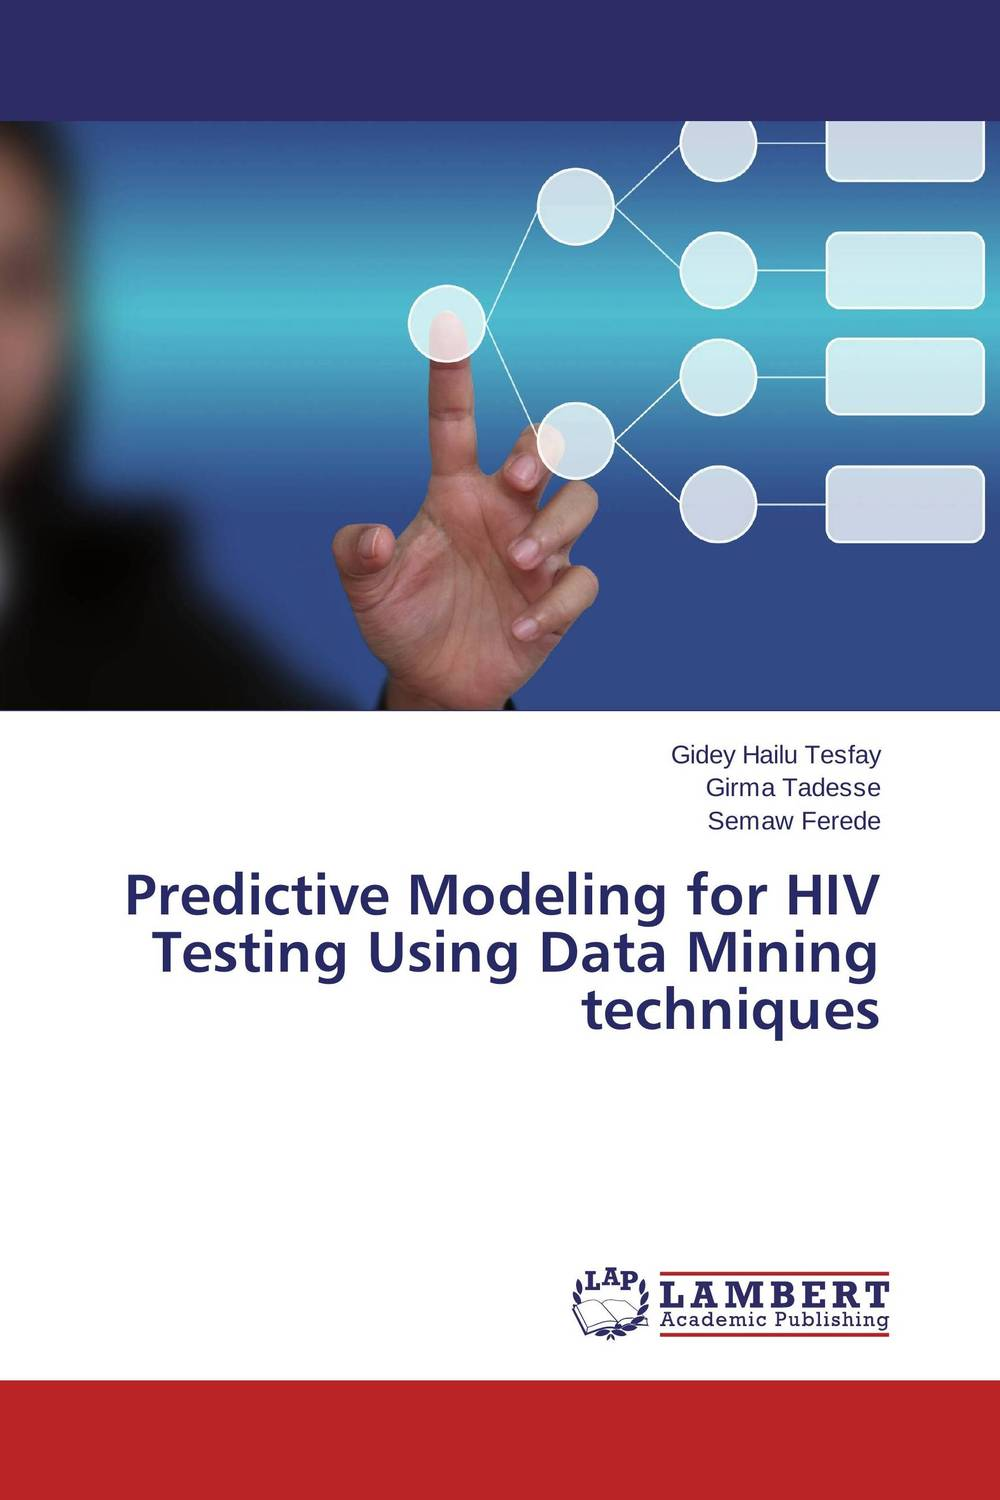 Predictive Modeling for HIV Testing Using Data Mining techniques tigabu dagne akal constructing predictive model for network intrusion detection